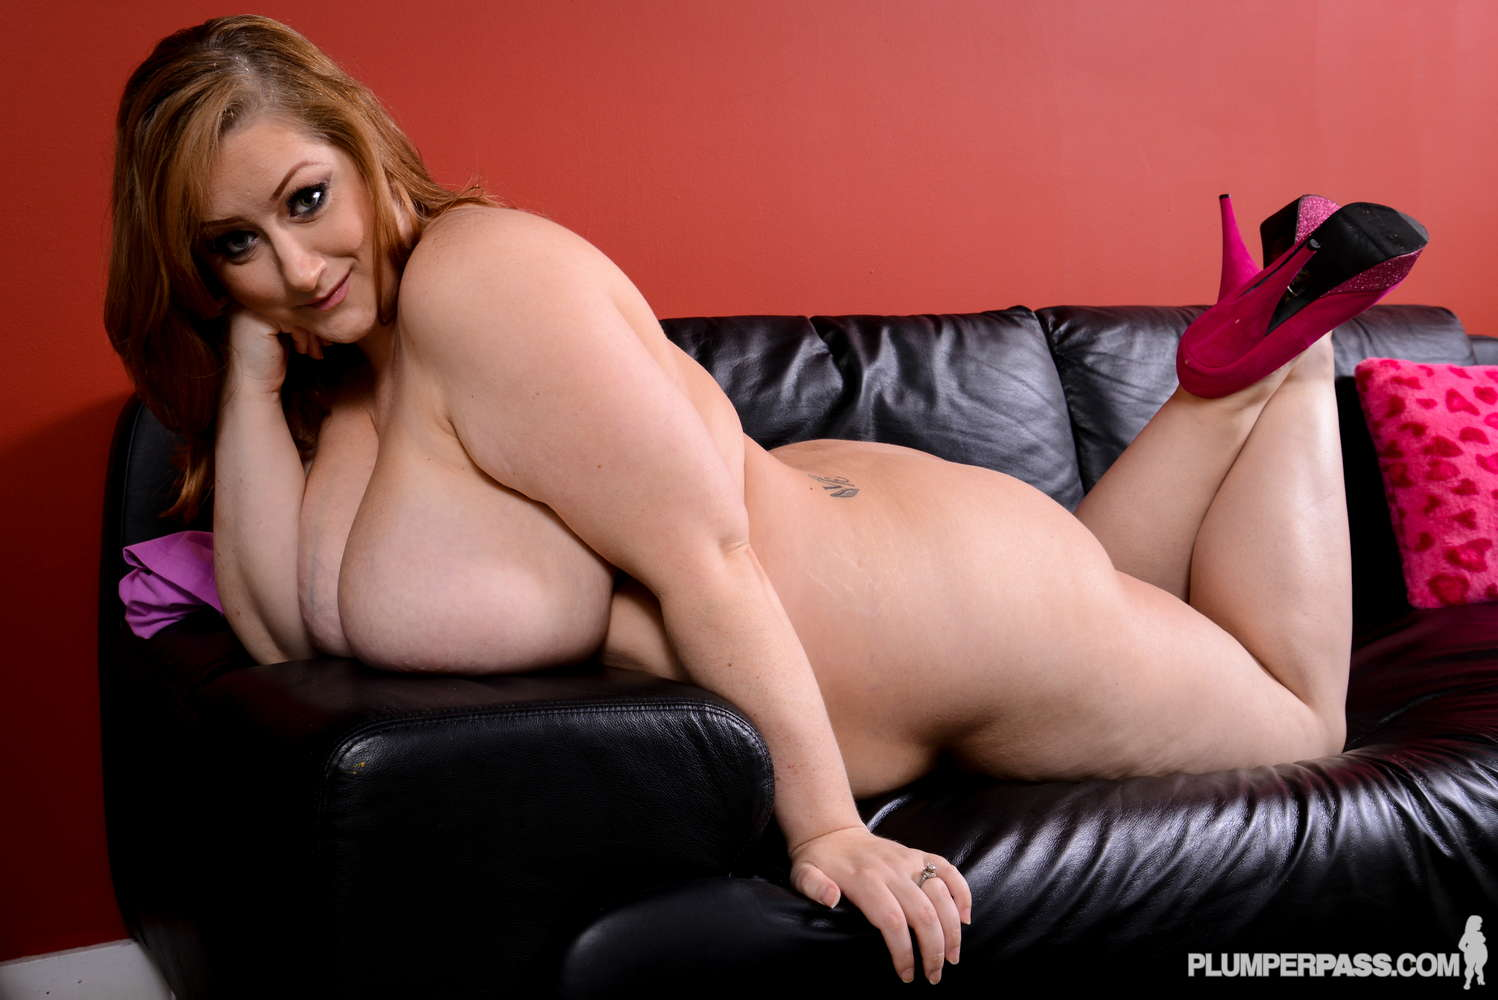 Reyna Mae on PlumperPass.com